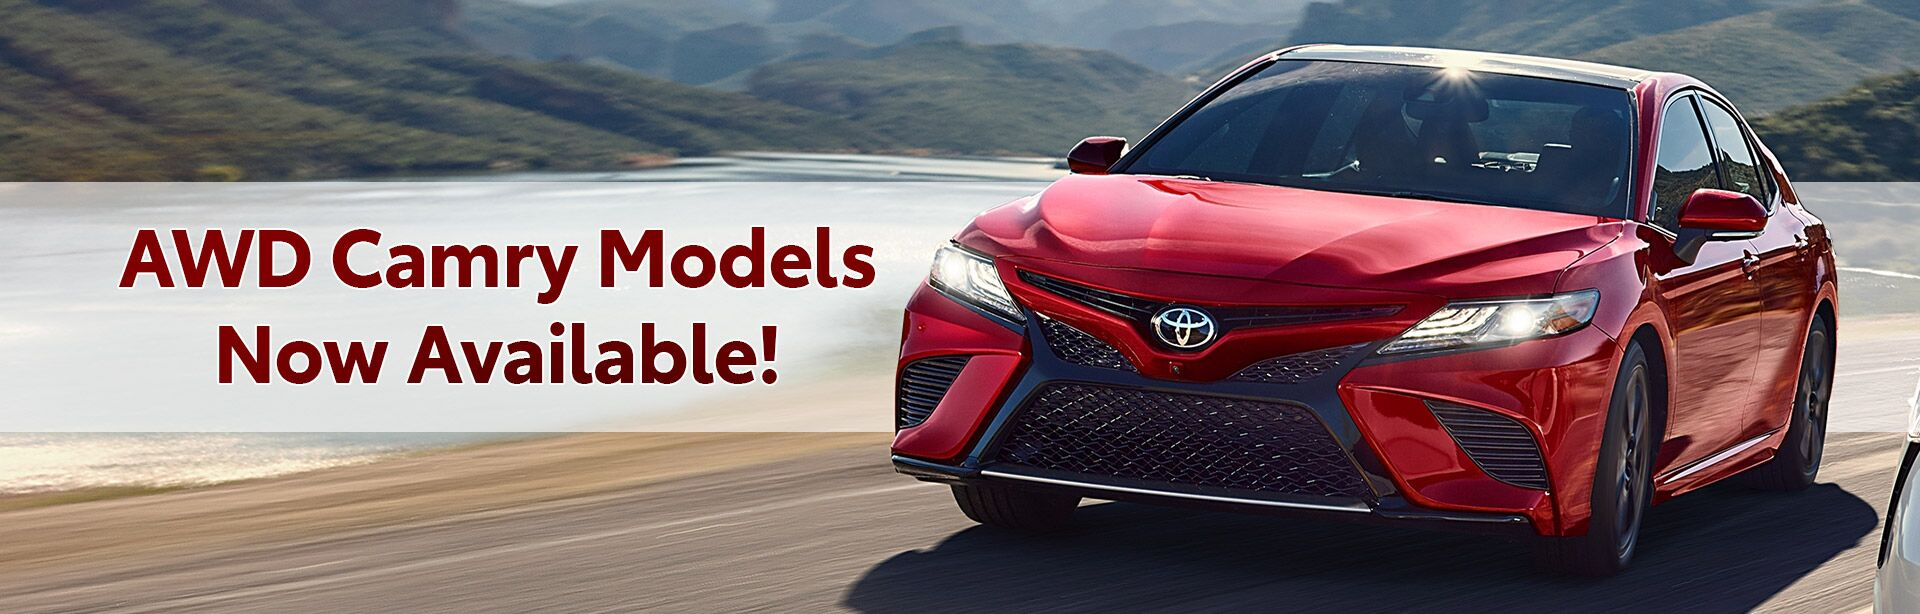 AWD Camry Models